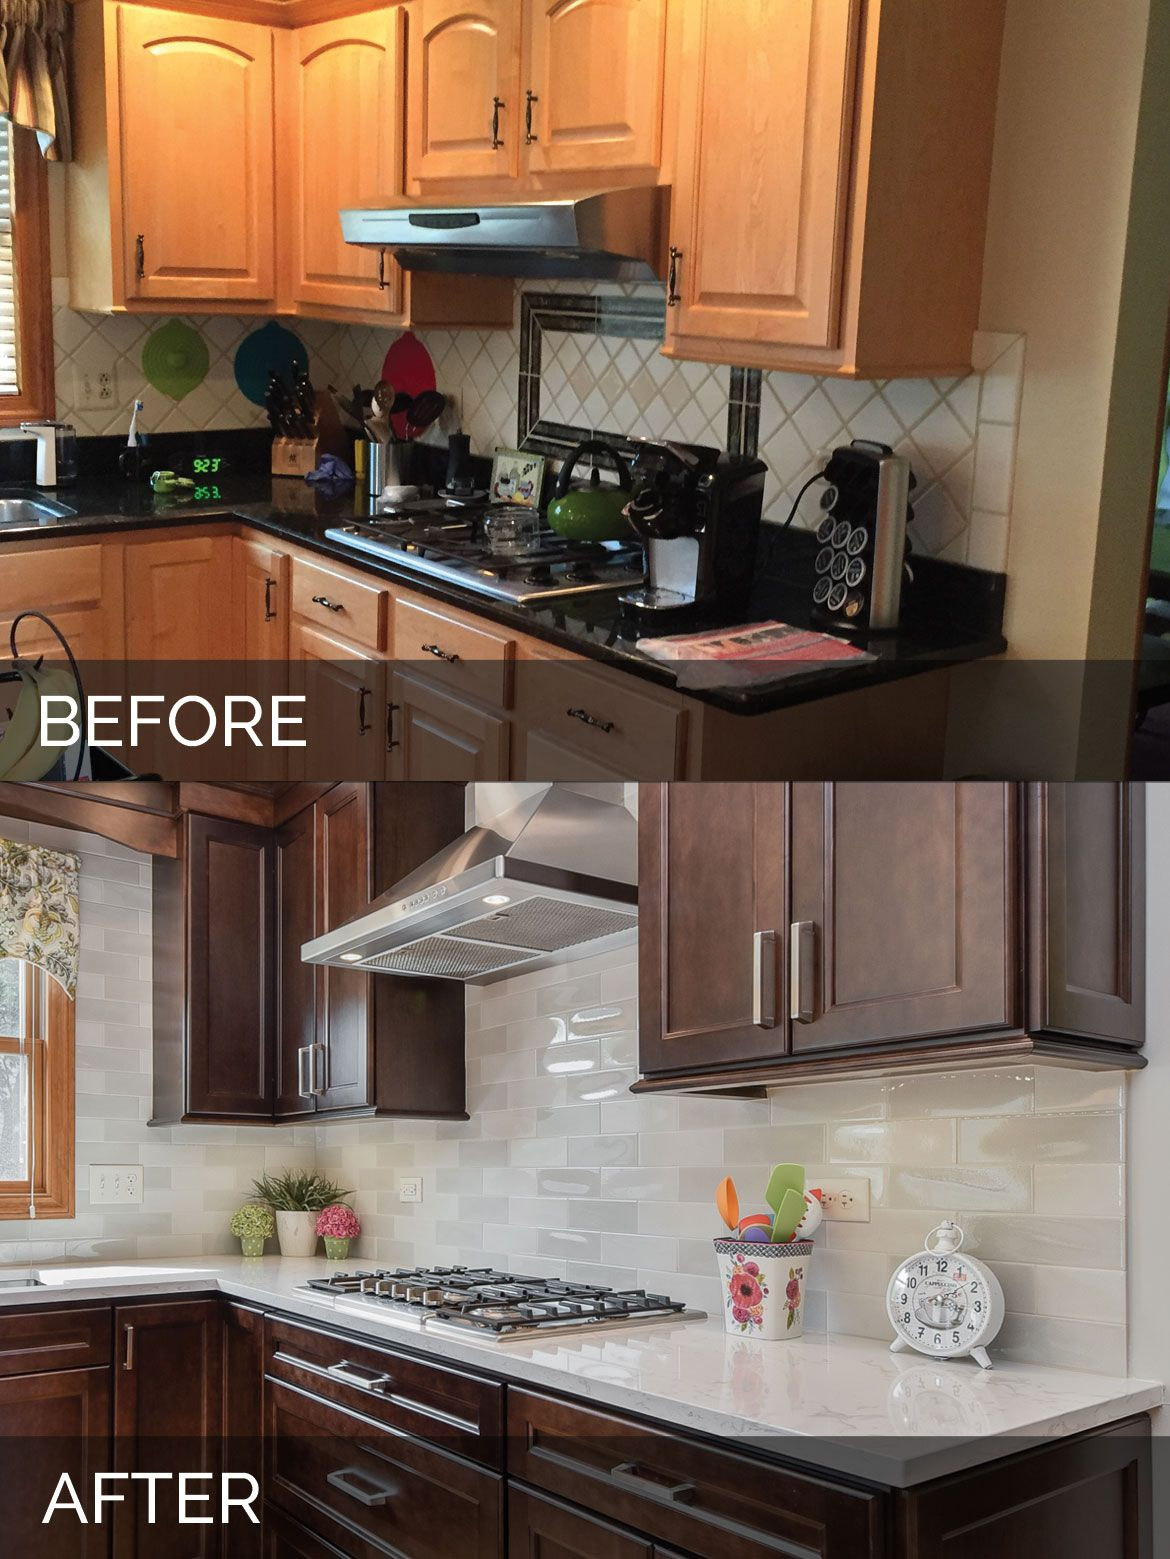 Sue Russell S Kitchen Before After Pictures Interior Design Kitchen Kitchen Design Kitchen Remodel Small